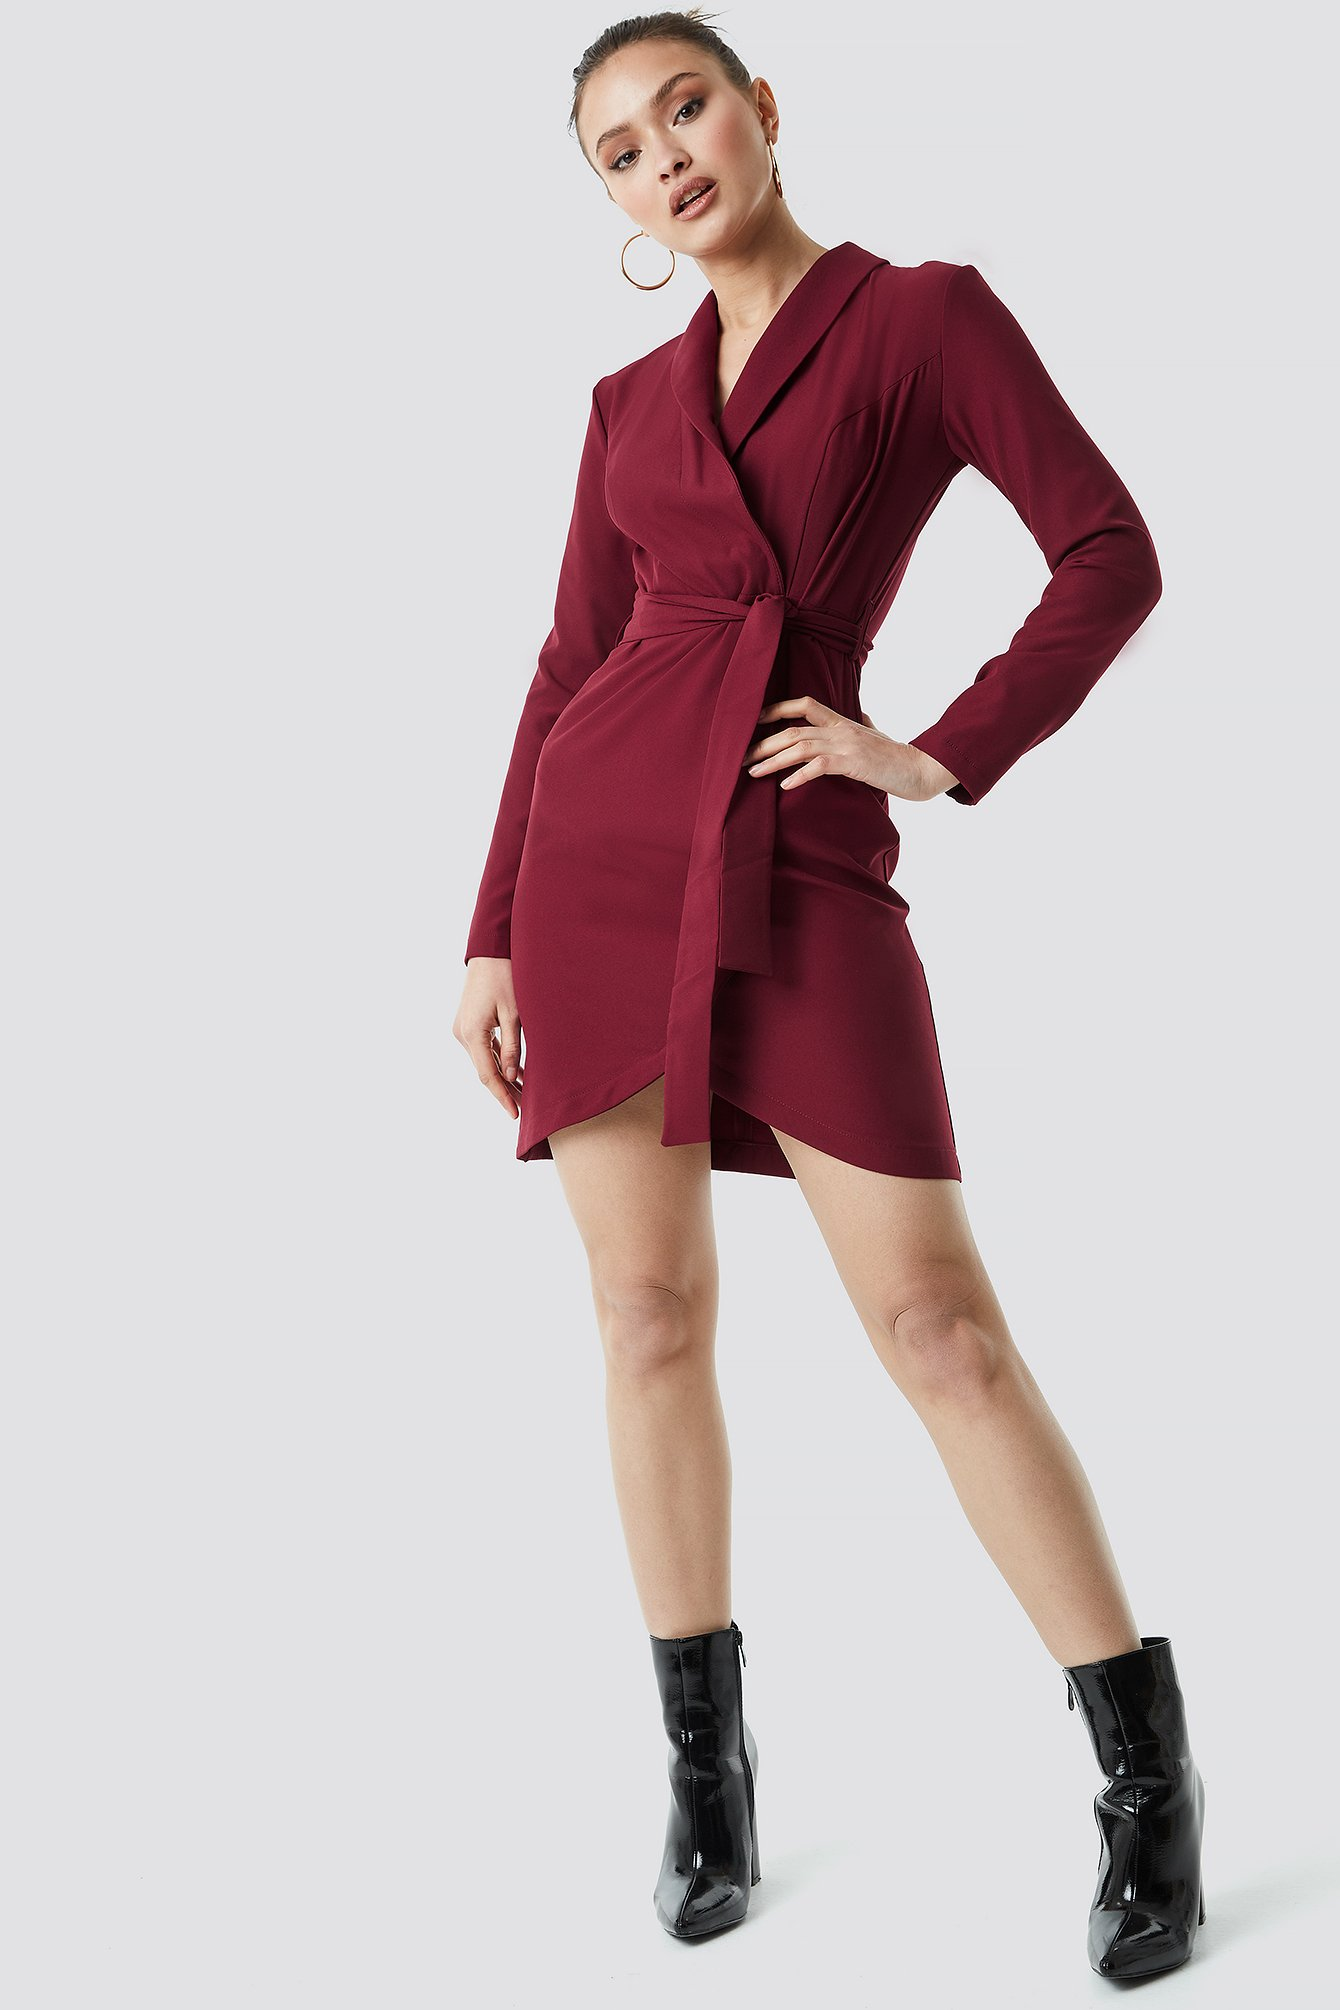 Burgundy Wrap Around Belt Dress